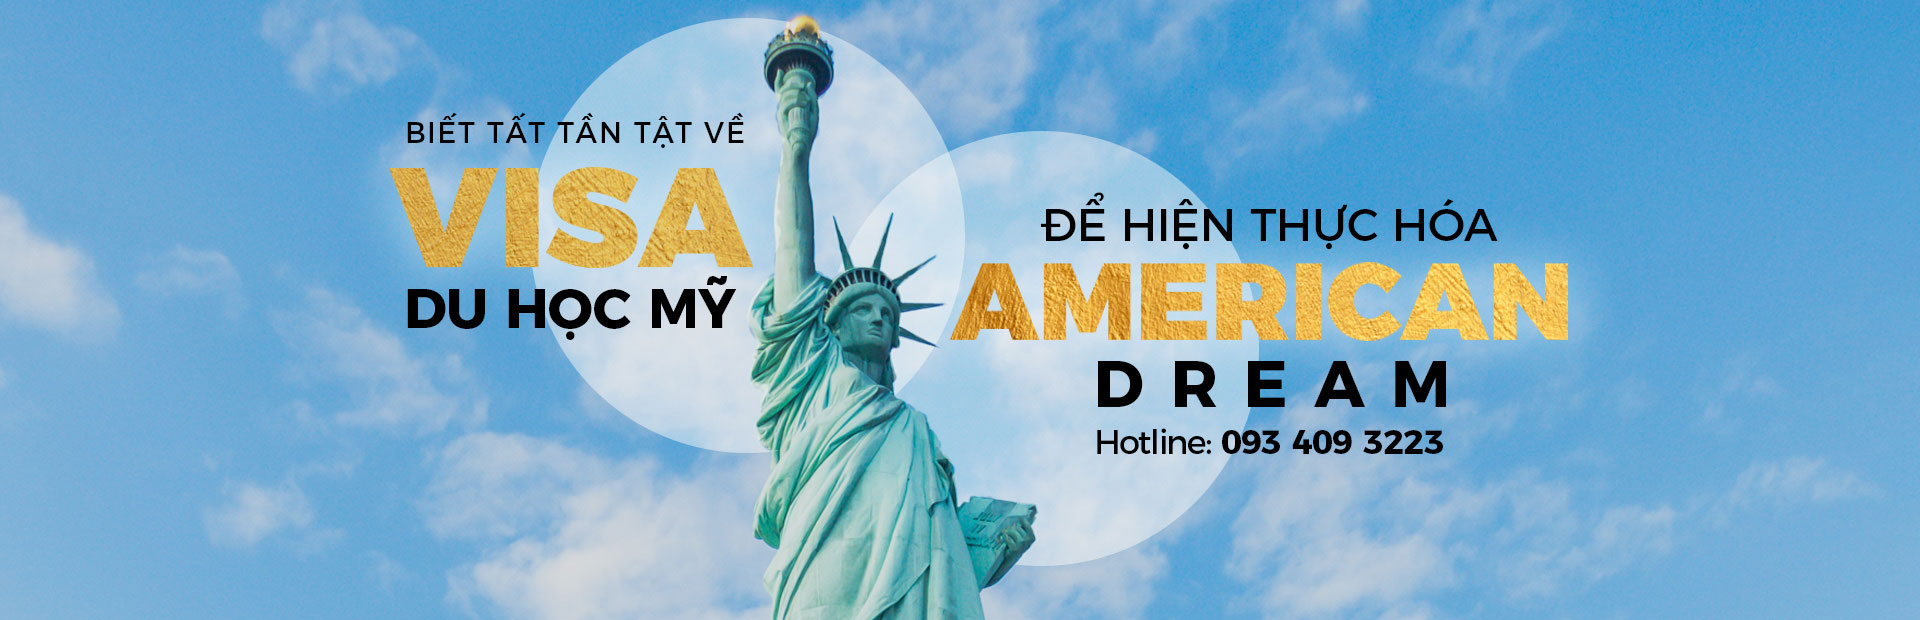 banner Mỹ dream